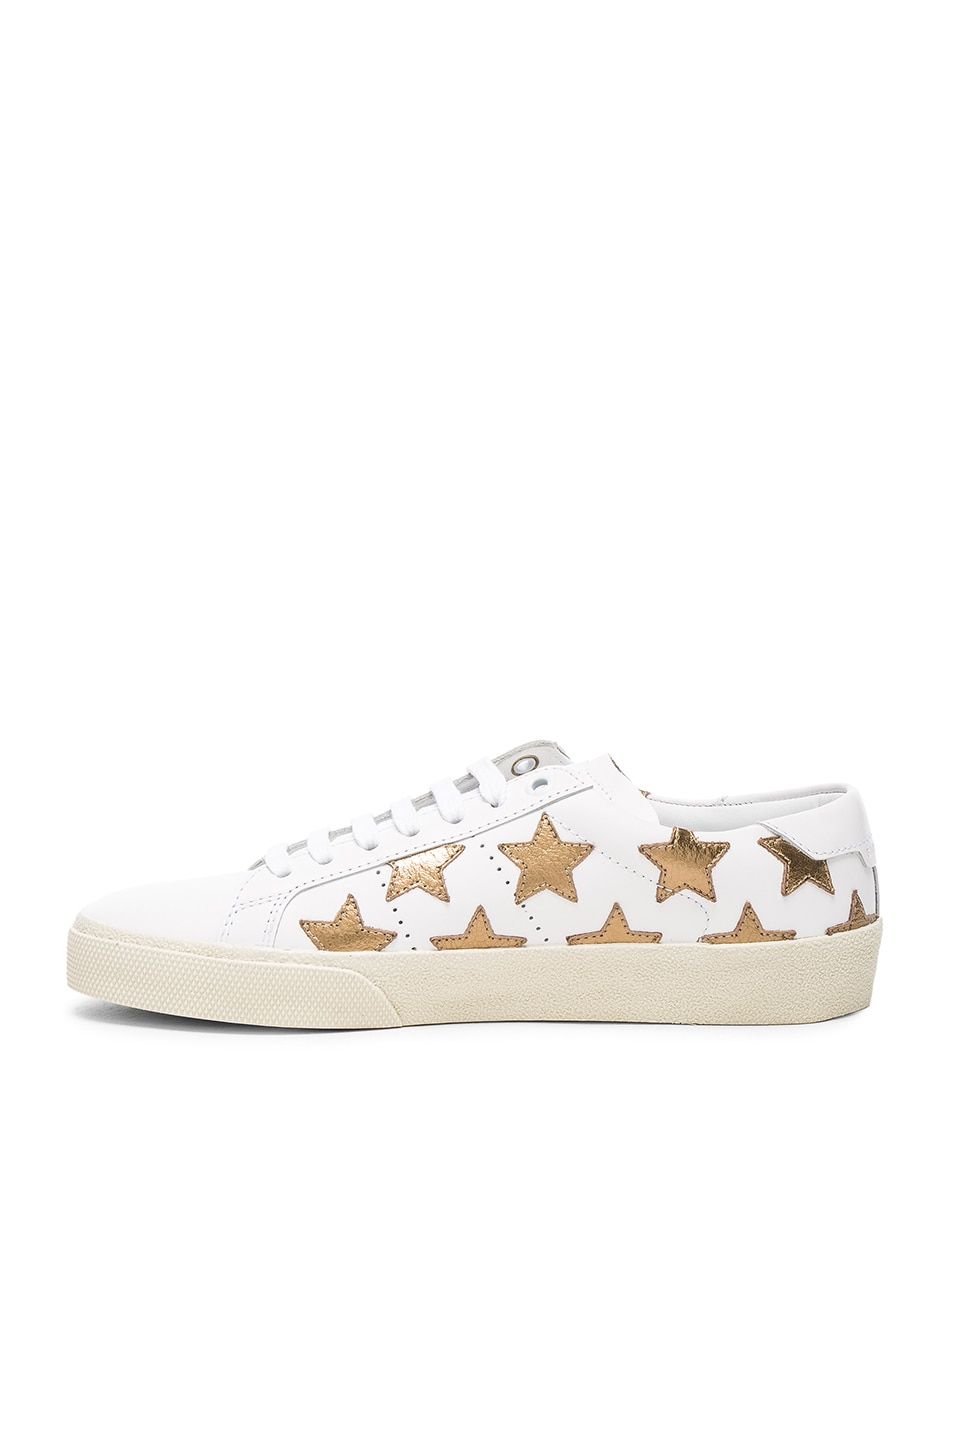 Image 5 of Saint Laurent Court Classic Star Leather Sneakers in Gold & Off White